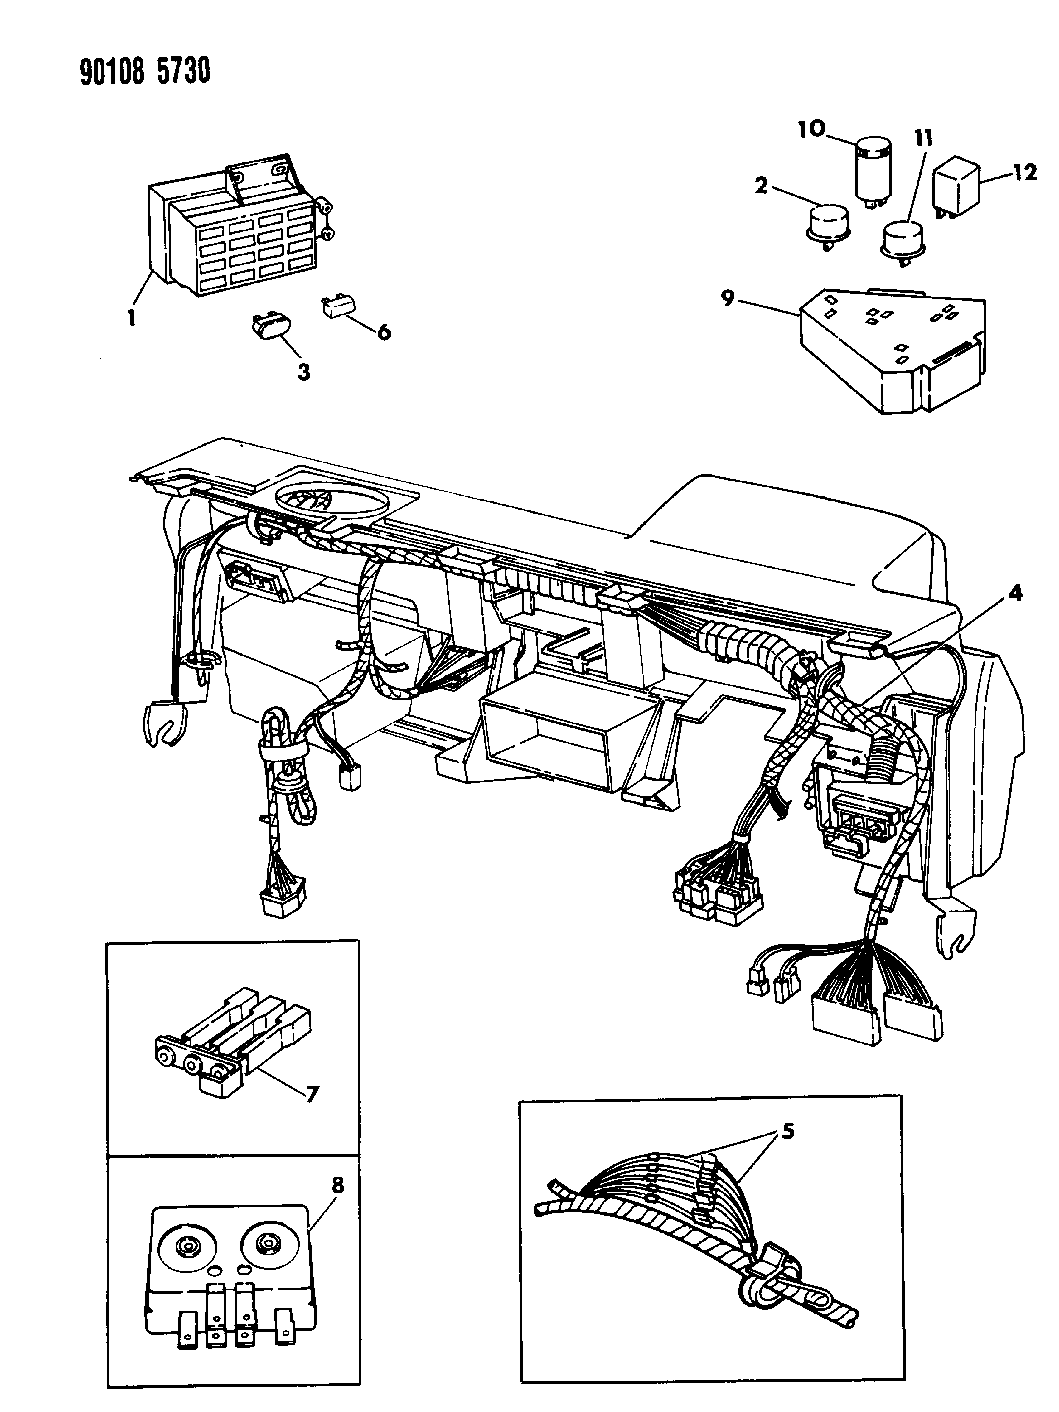 1990 dodge spirit wiring - instrument panel